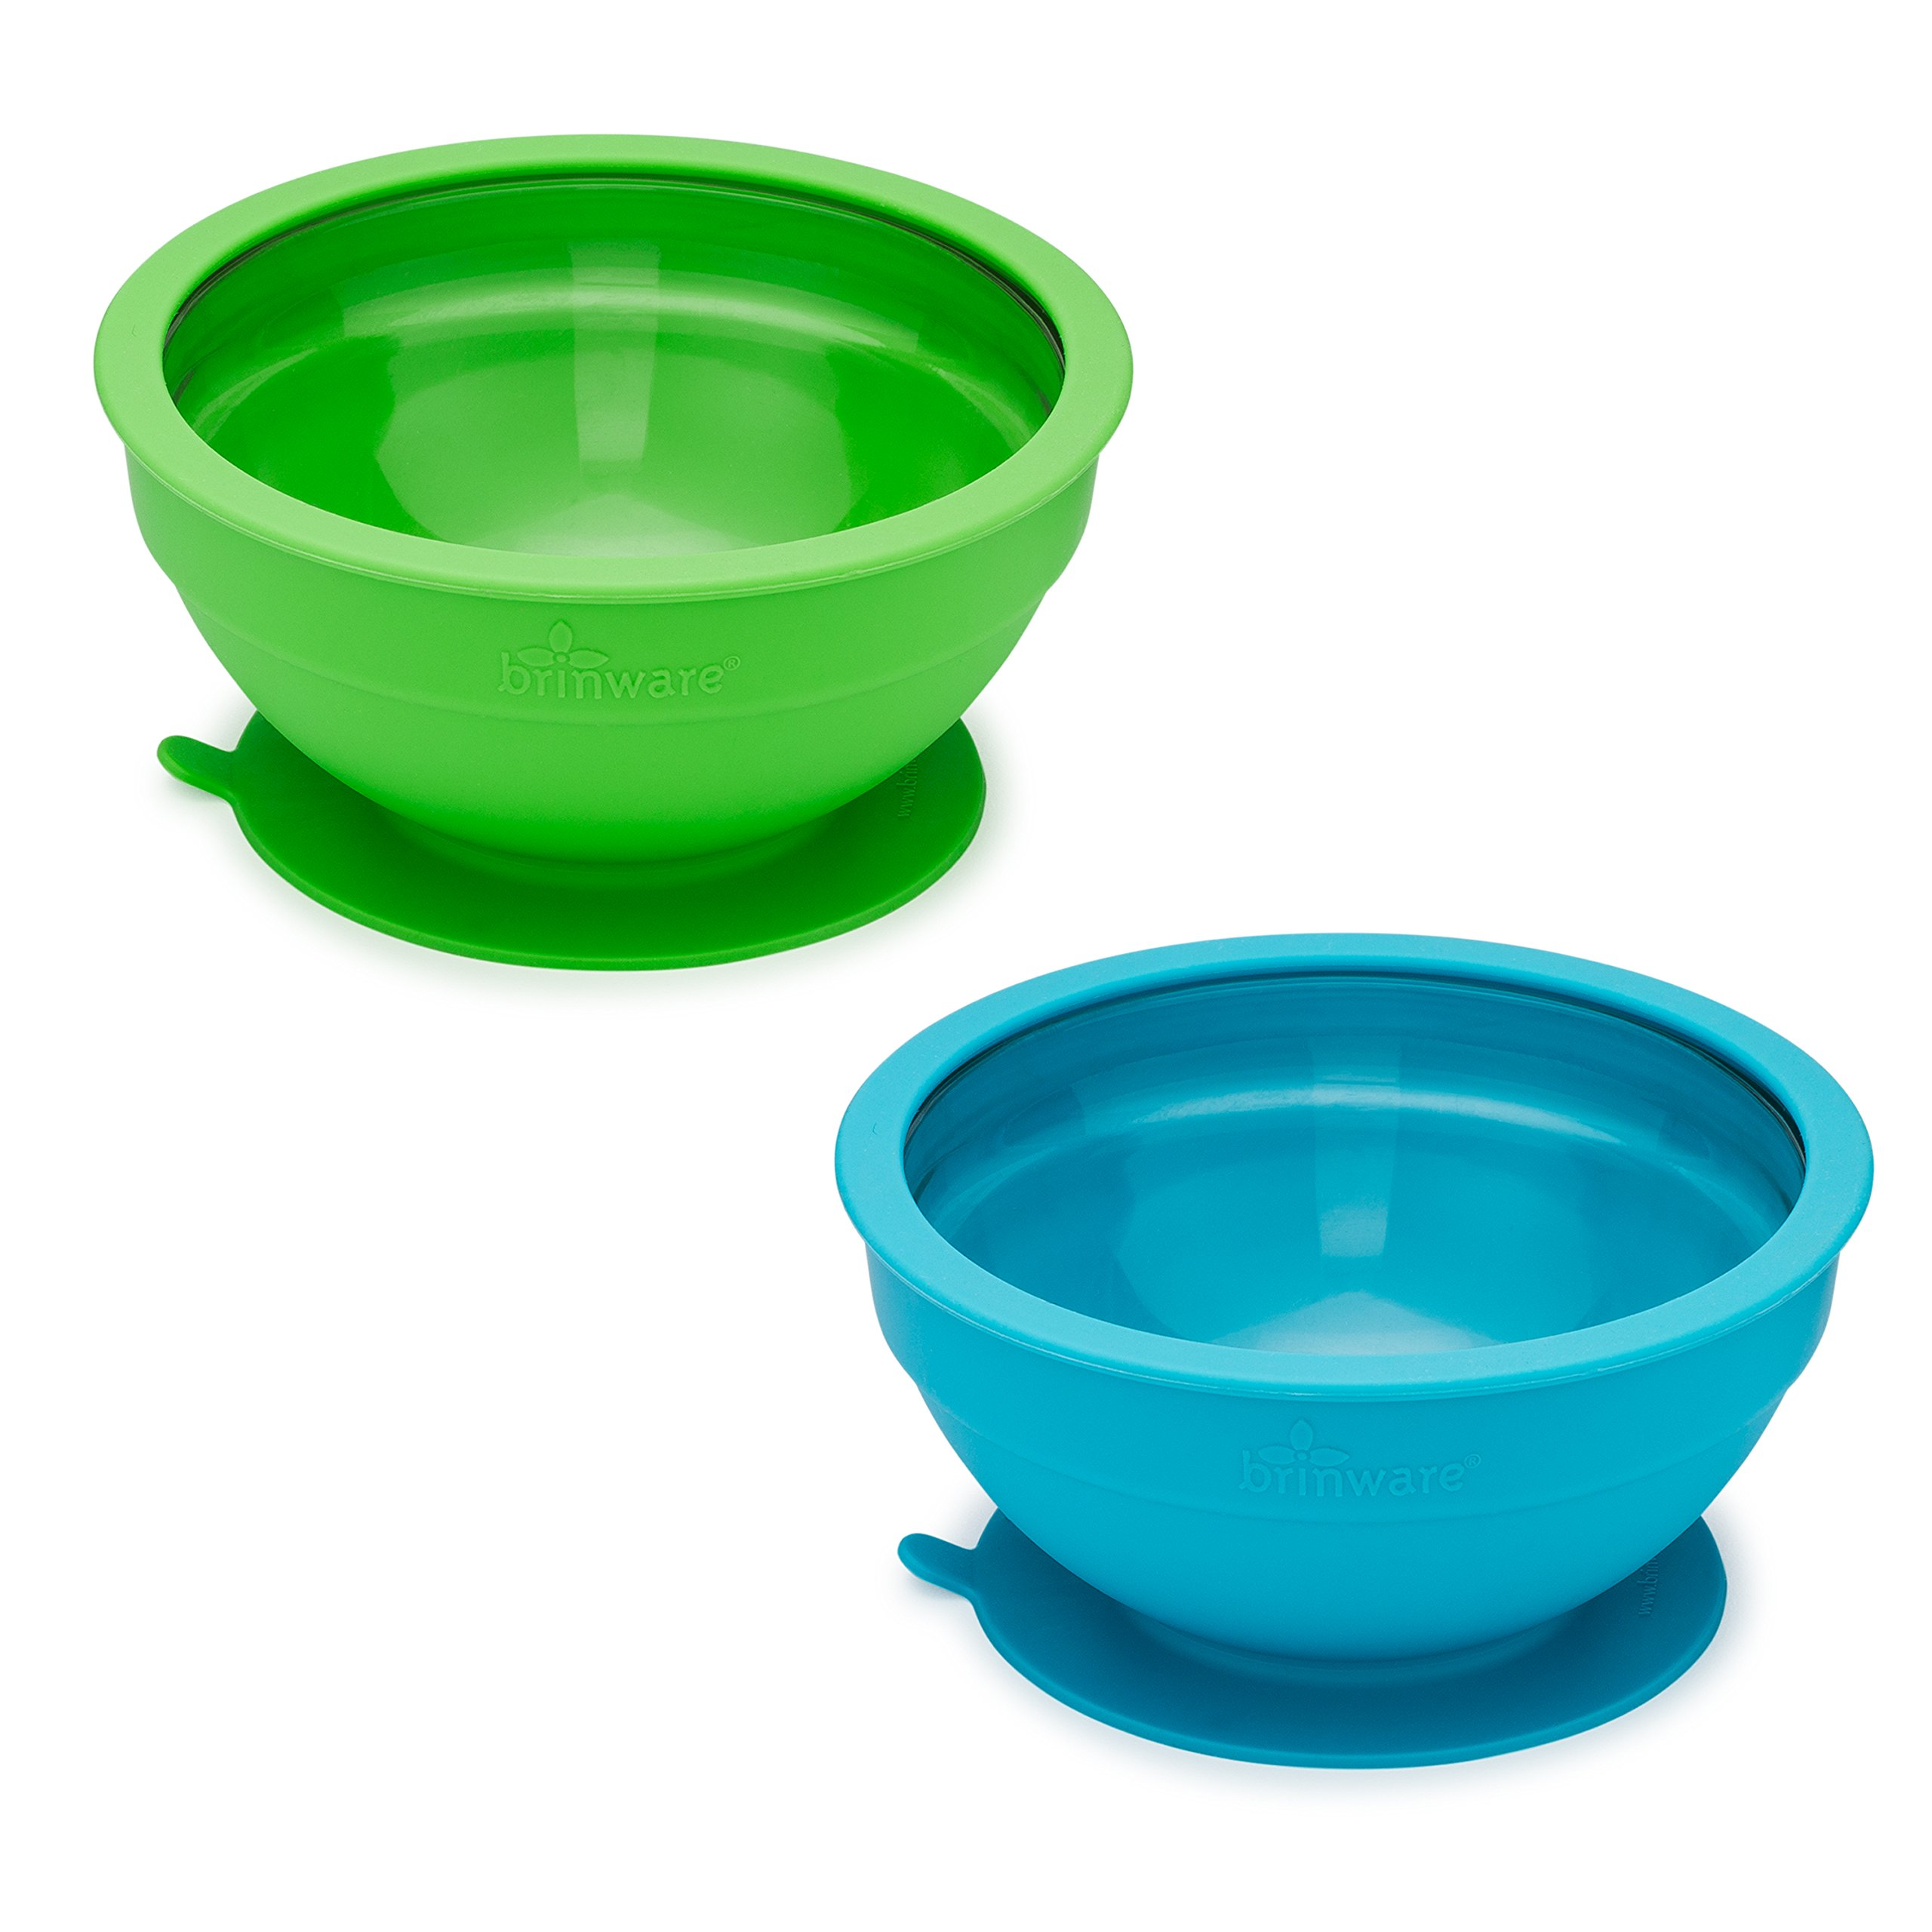 brinware 2 Piece Glass and Silicone Suction Bowls, Blue Green